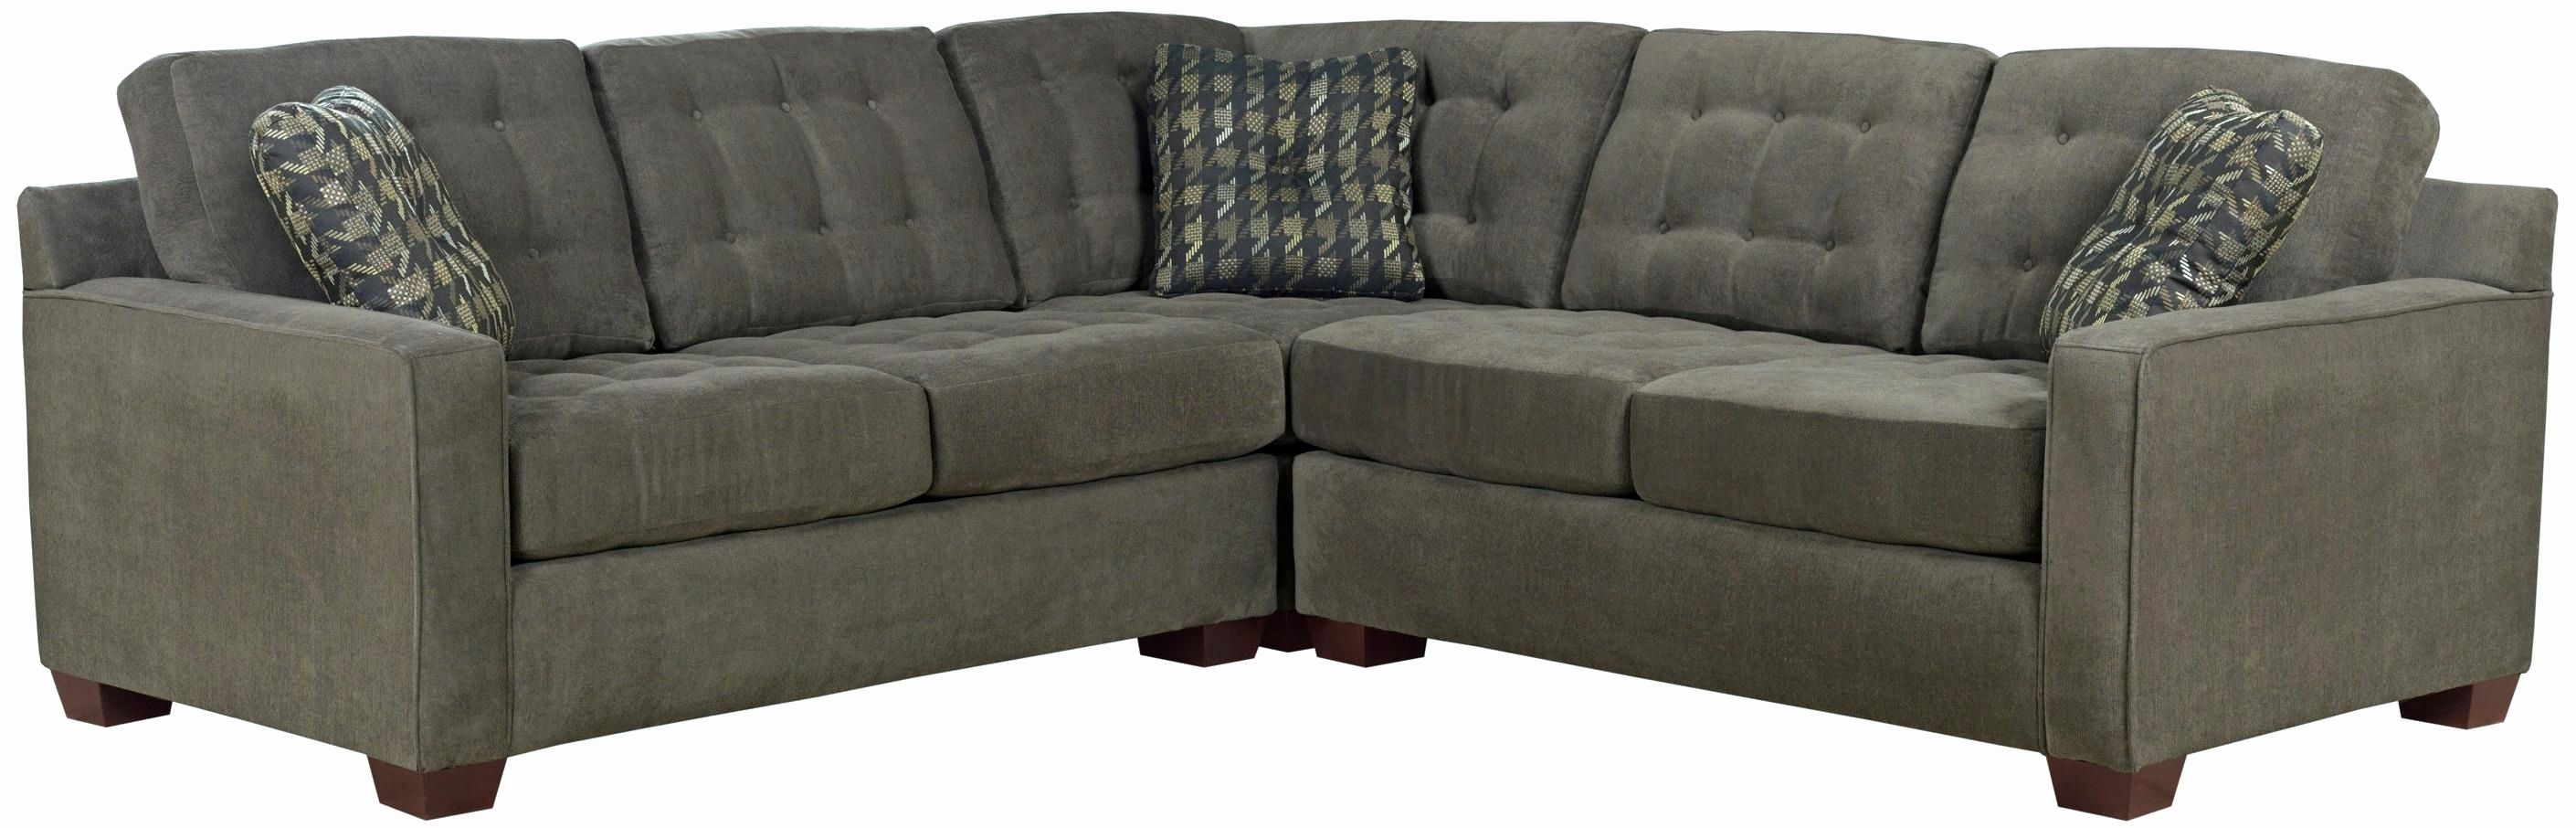 Lovely Contemporary L Shaped Sofa Art Broyhill Furniture Tribeca Regarding Sectional Sofas At Broyhill (View 13 of 15)